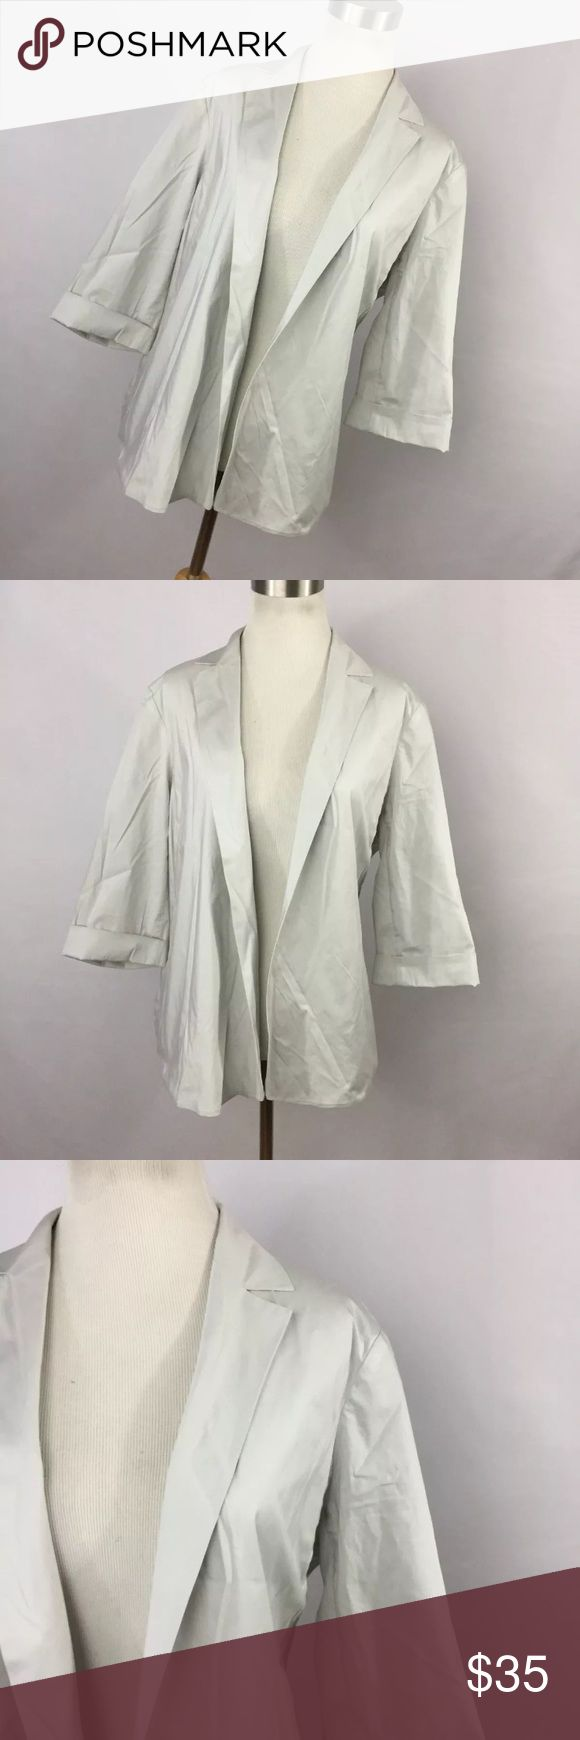 """Peter O Mahler M Jacket Gray Cement Lagenlook Peter O Mahler 2 M Medium Jacket Light Gray Cement Lagenlook Open Front L/S. Excellent condition. Smoke free home. Chest measurement - 46"""" Length measurement - 23"""" Sleeve Length measurement - 16"""" peter o mahler Jackets & Coats"""